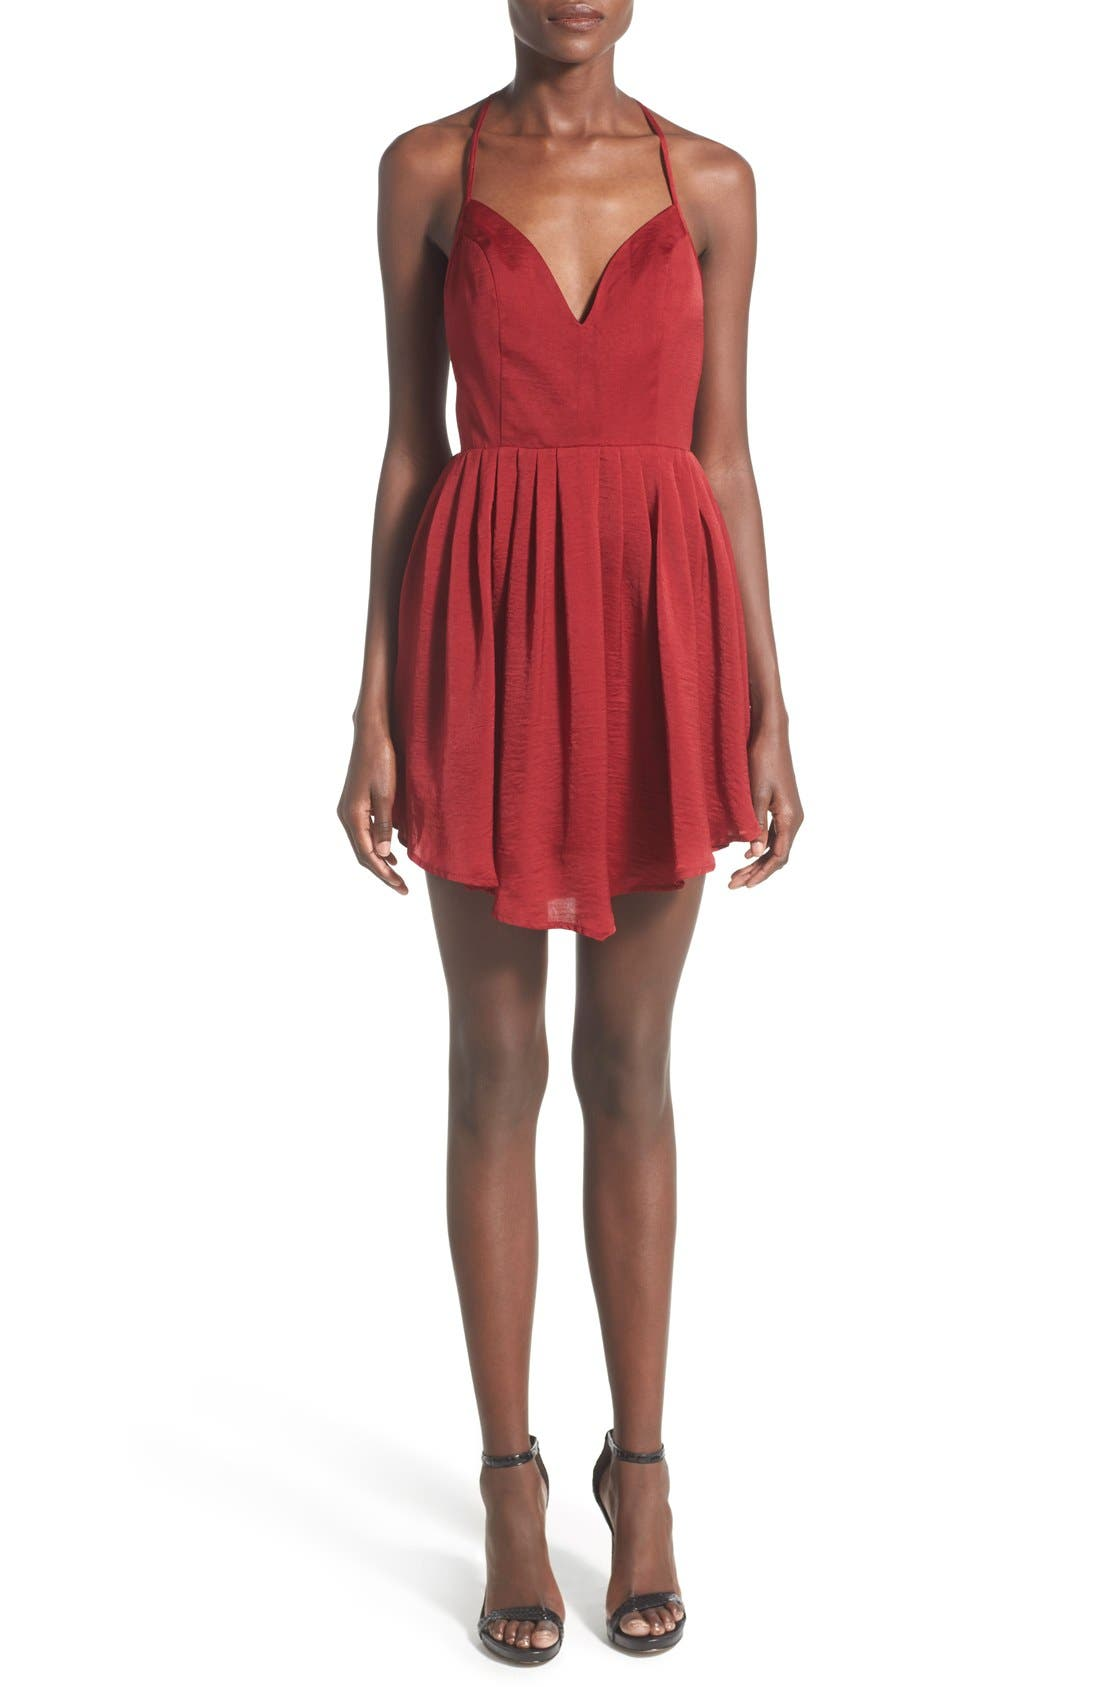 Alternate Image 1 Selected - NBD 'Party Girl' Fit & Flare Dress